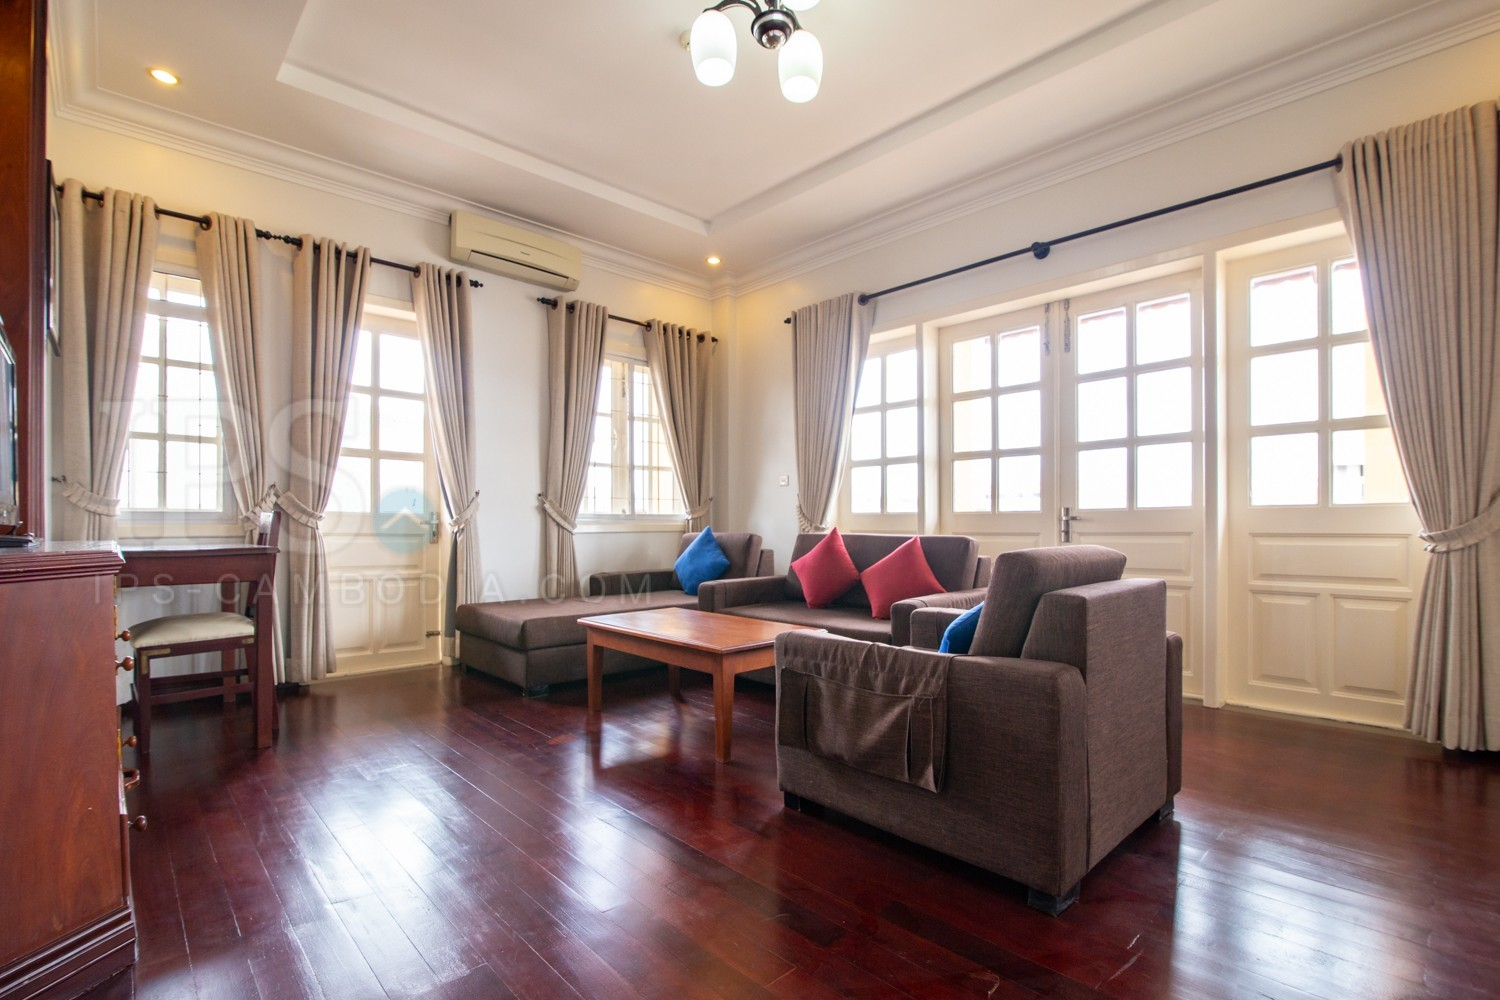 2 Bedroom Apartment For Rent - Toul Kork, Phnom Penh